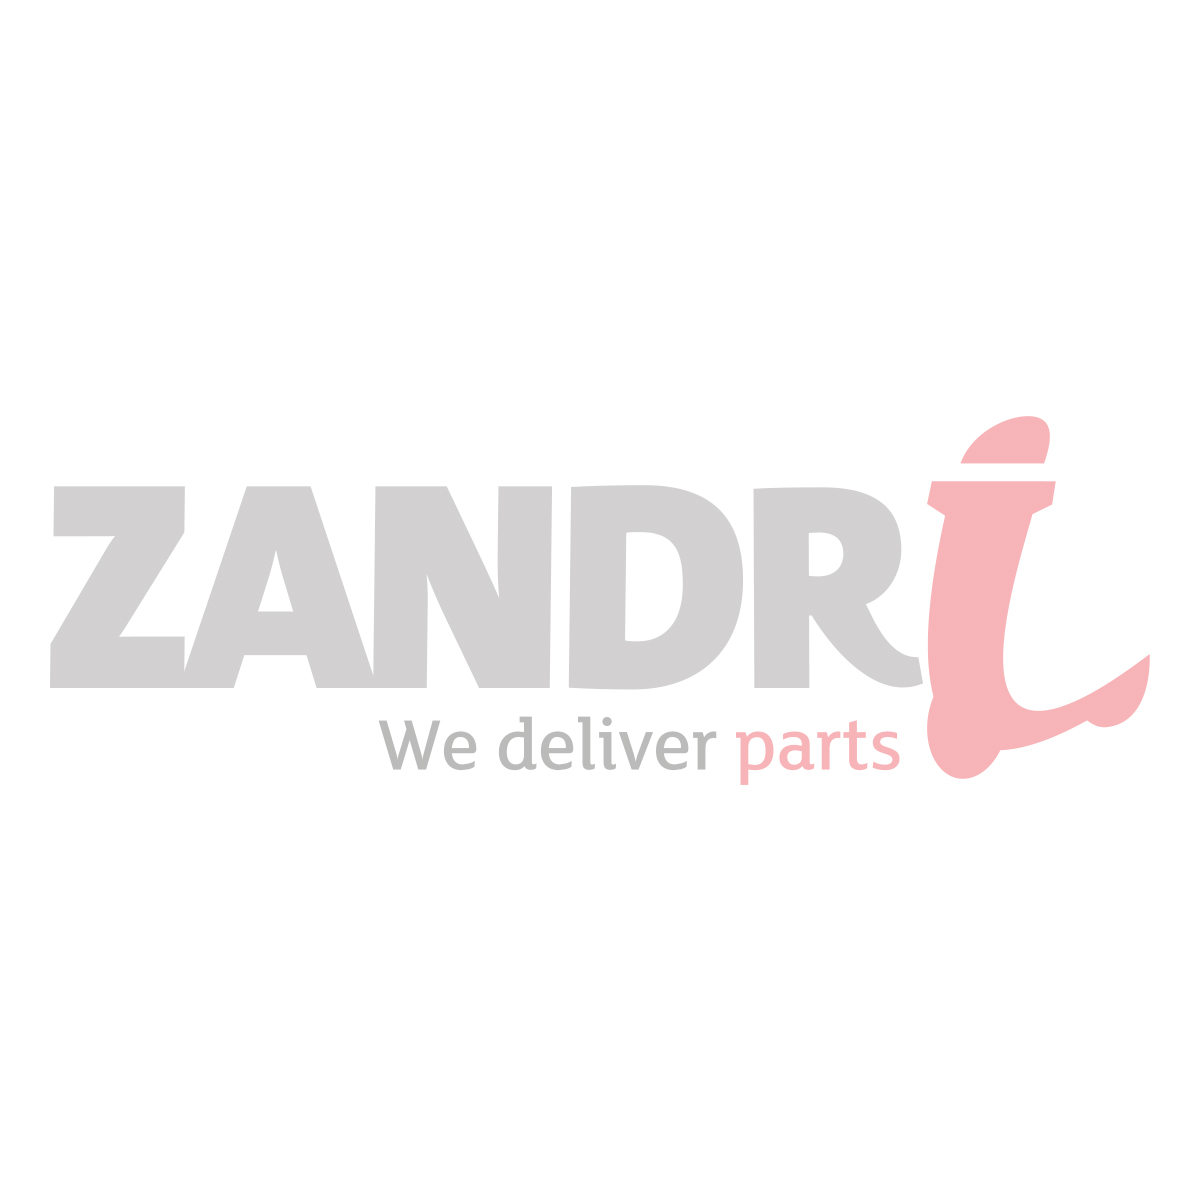 eindoverbrenging-carter Kymco Agility RS 4-takt rood